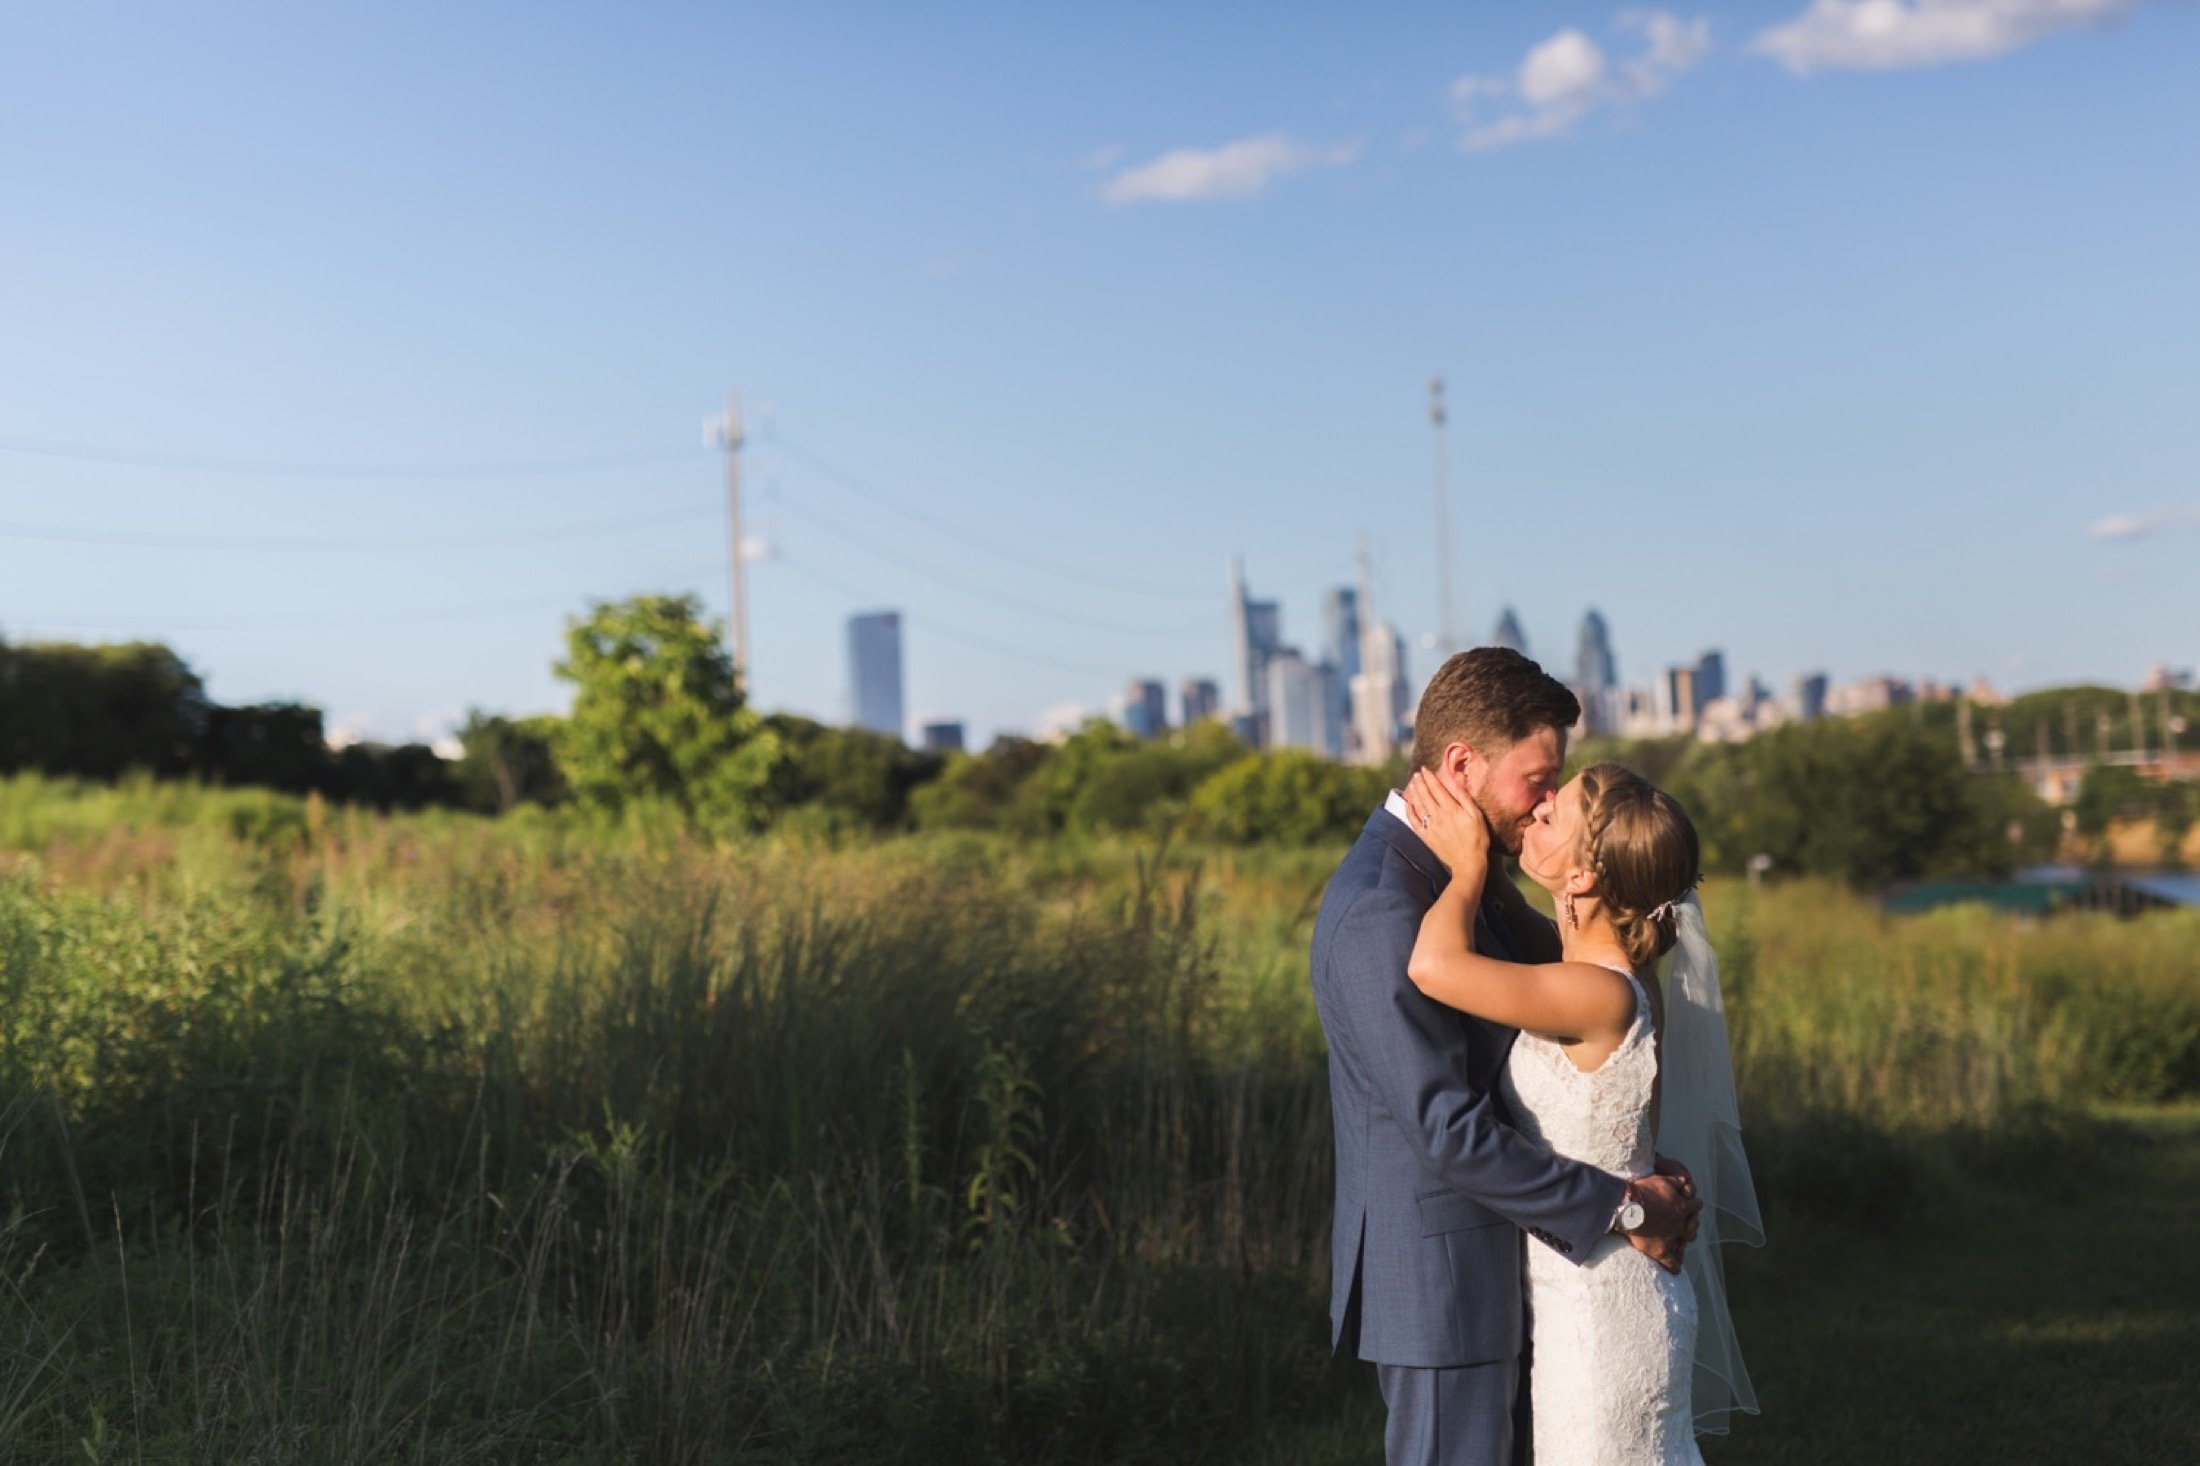 unique wedding venue, Philadelphia